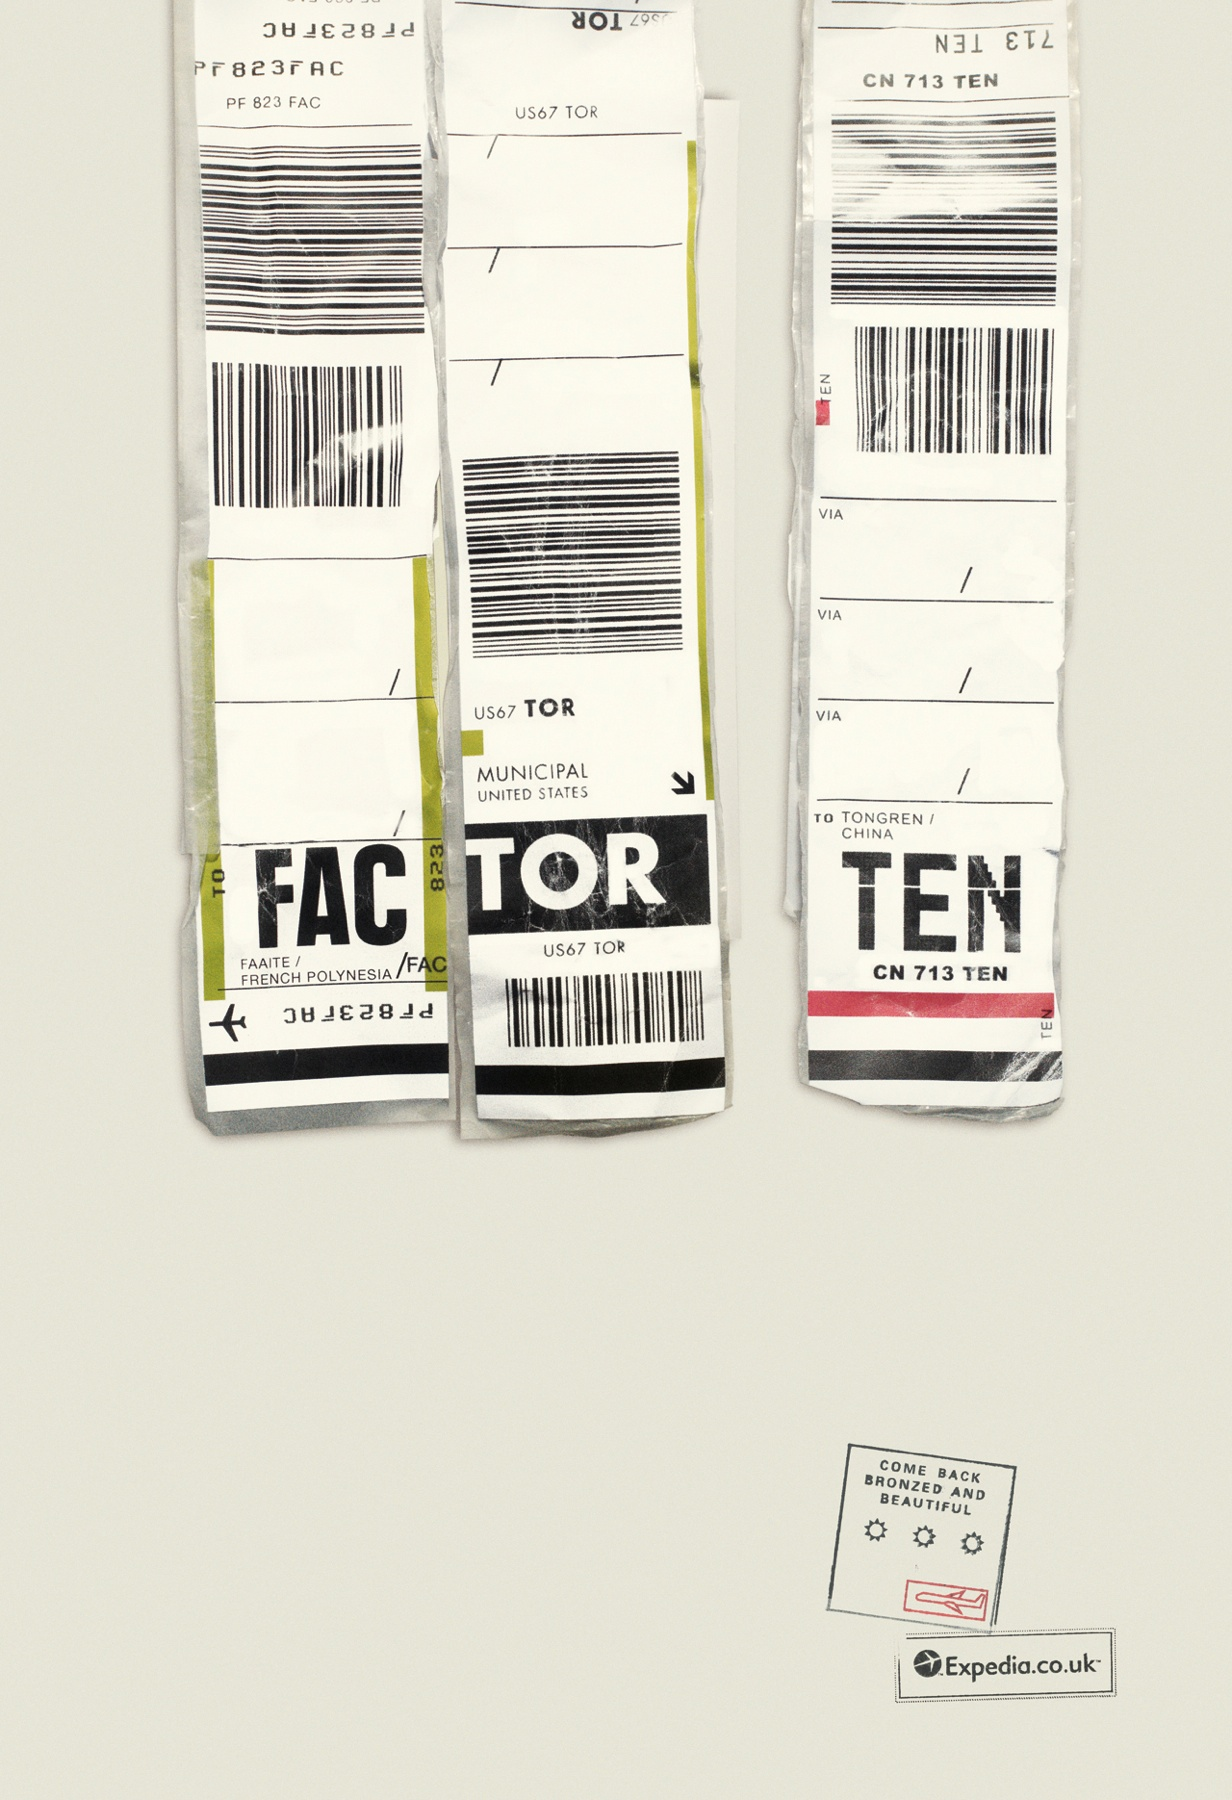 Expedia_baggage_tag_ad_Jan_2013_FAC_TOR_TEN